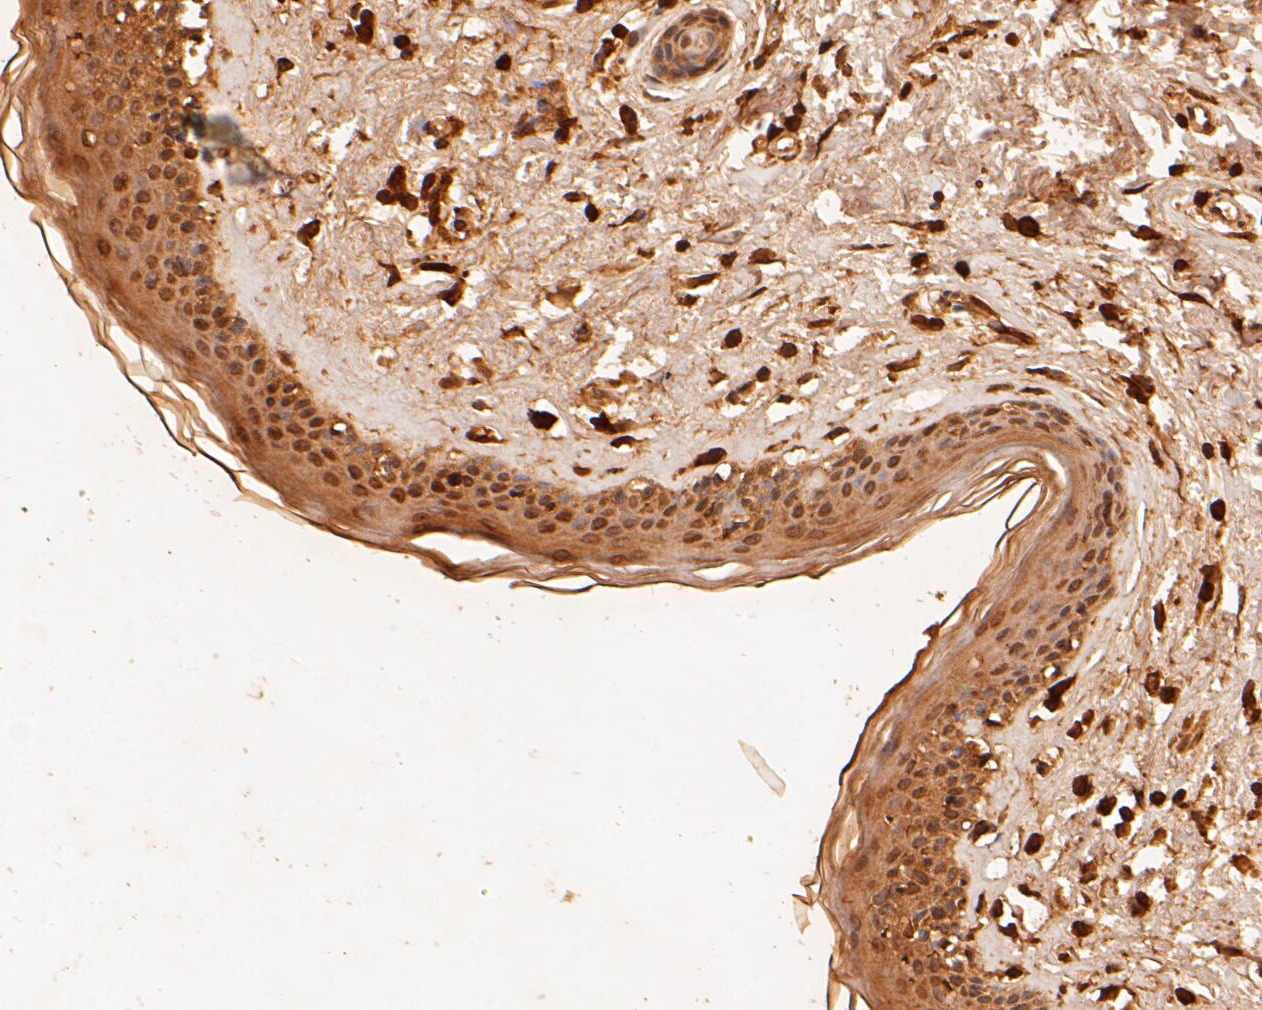 Immunohistochemical analysis of paraffin-embedded human skin tissue using anti-MDM2 antibody. The section was pre-treated using heat mediated antigen retrieval with sodium citrate buffer (pH 6.0) for 20 minutes. The tissues were blocked in 5% BSA for 30 minutes at room temperature, washed with ddH2O and PBS, and then probed with the primary antibody (ER1902-14, 1/500) for 30 minutes at room temperature. The detection was performed using an HRP conjugated compact polymer system. DAB was used as the chromogen. Tissues were counterstained with hematoxylin and mounted with DPX.